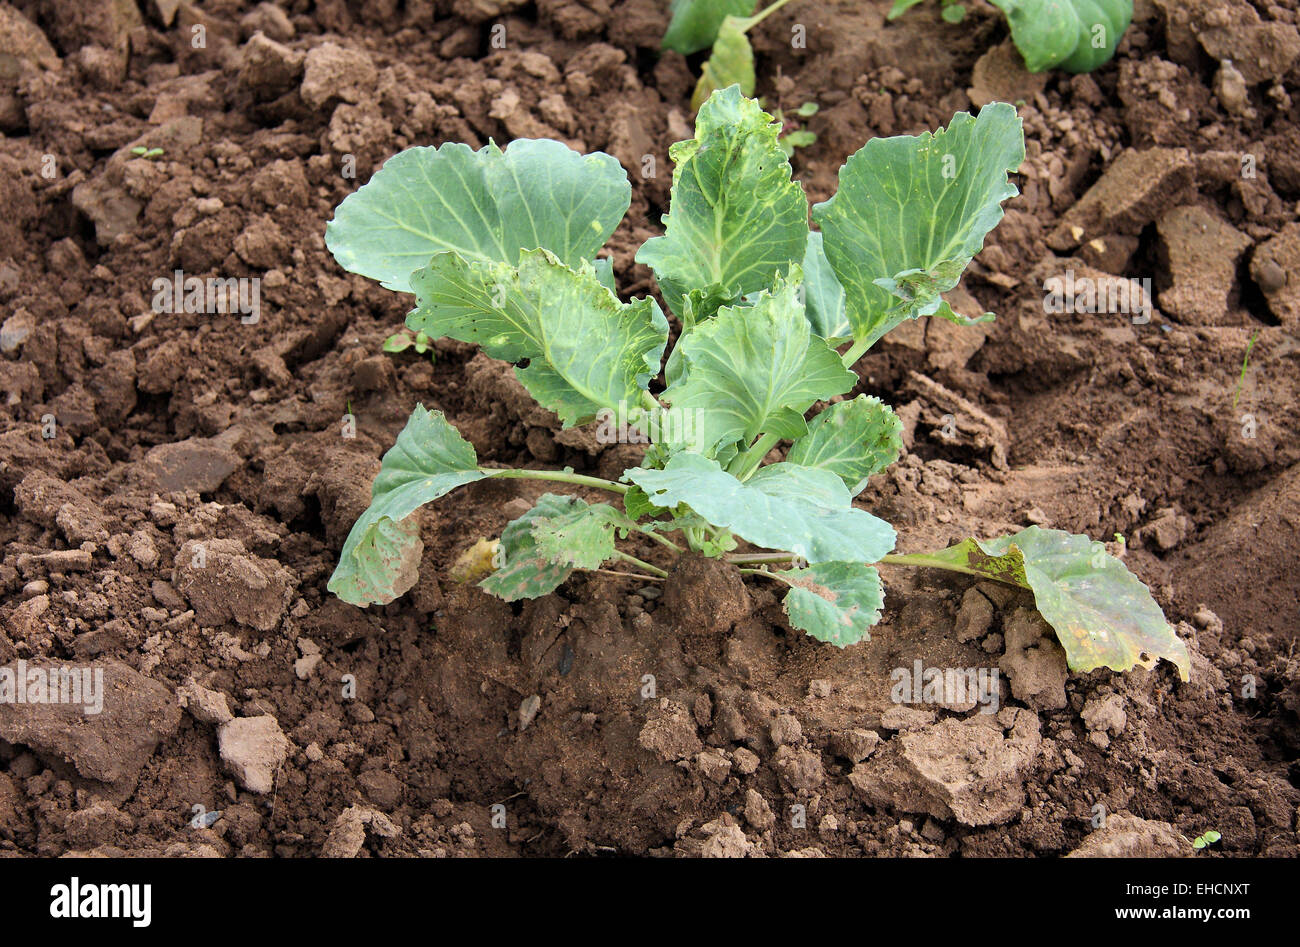 White cabbage seedling - Stock Image